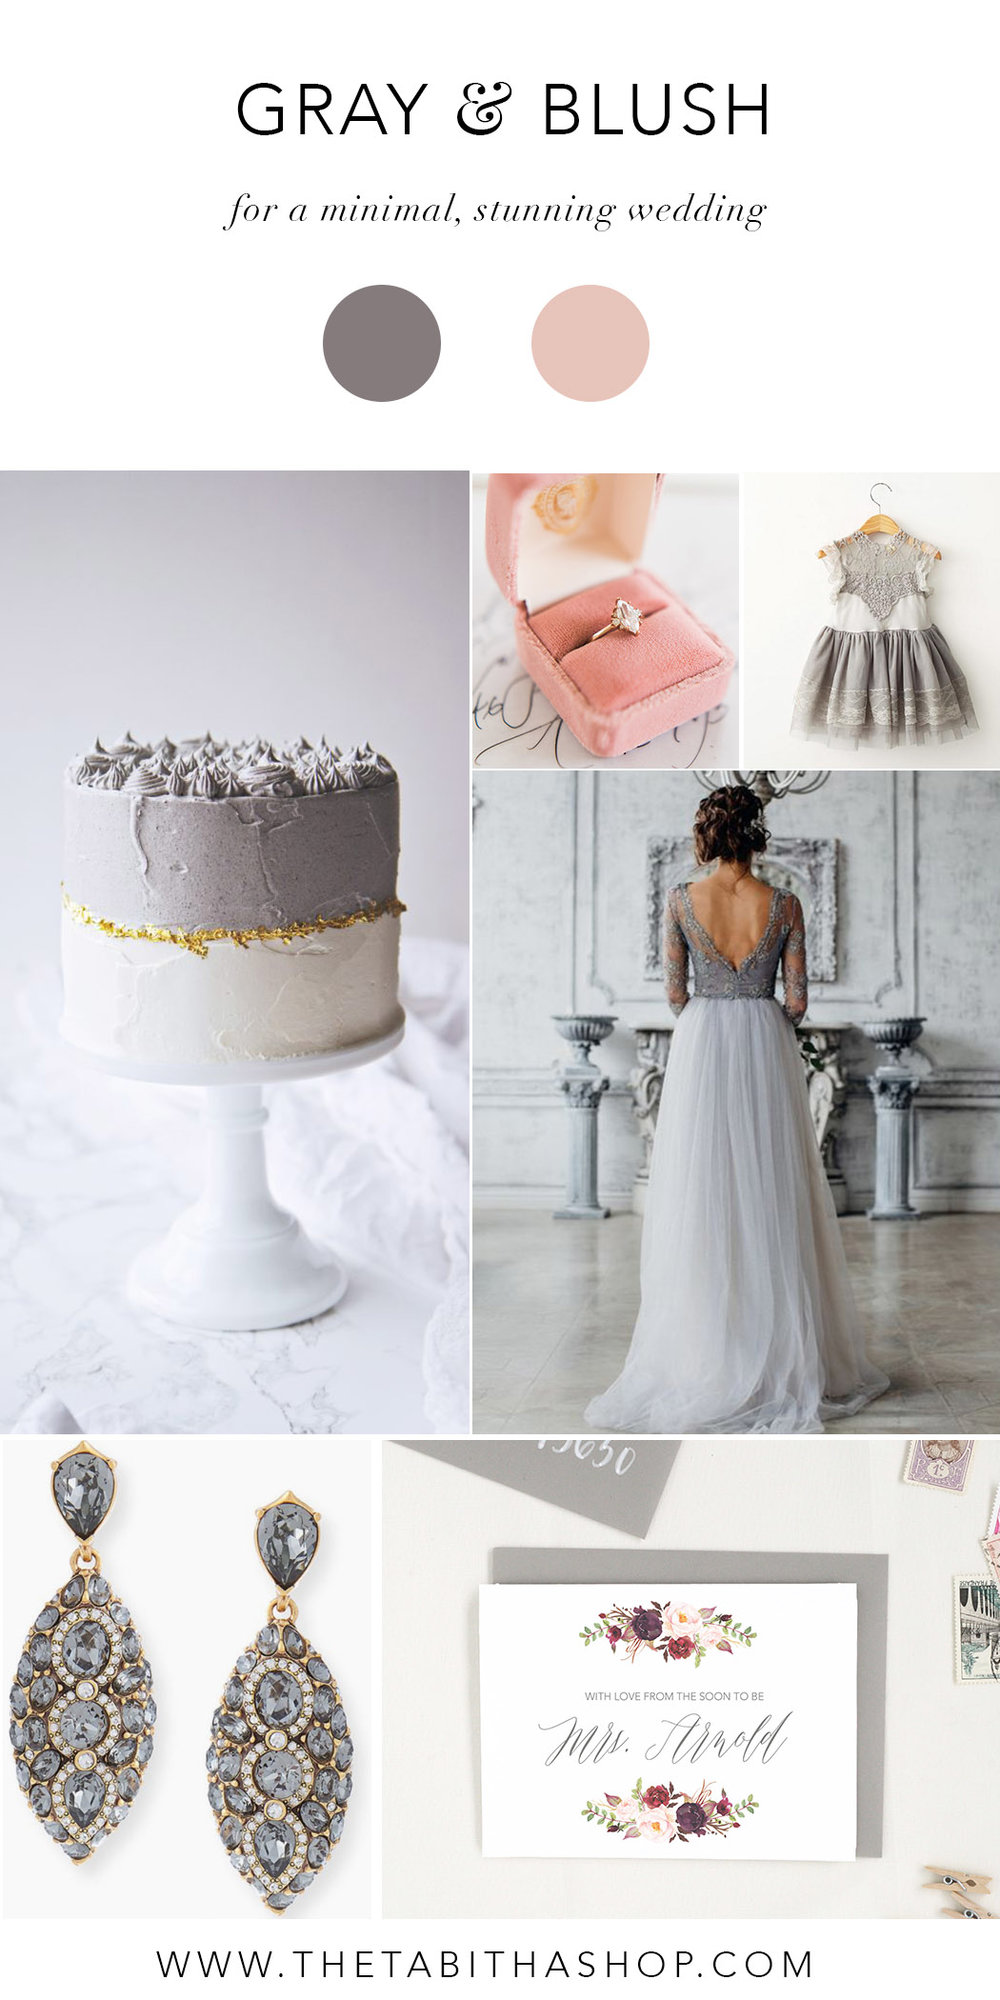 Clockwise, starting top left: Photo by  La Peche Fraiche  // Photo by Joy Michelle Photography via  100 Layer Cake  // Dress from  ModerneChild Shoppe  // Photo via Pinterest // Card by  The Tabitha Shop   // Earrings from  Neiman Marcus